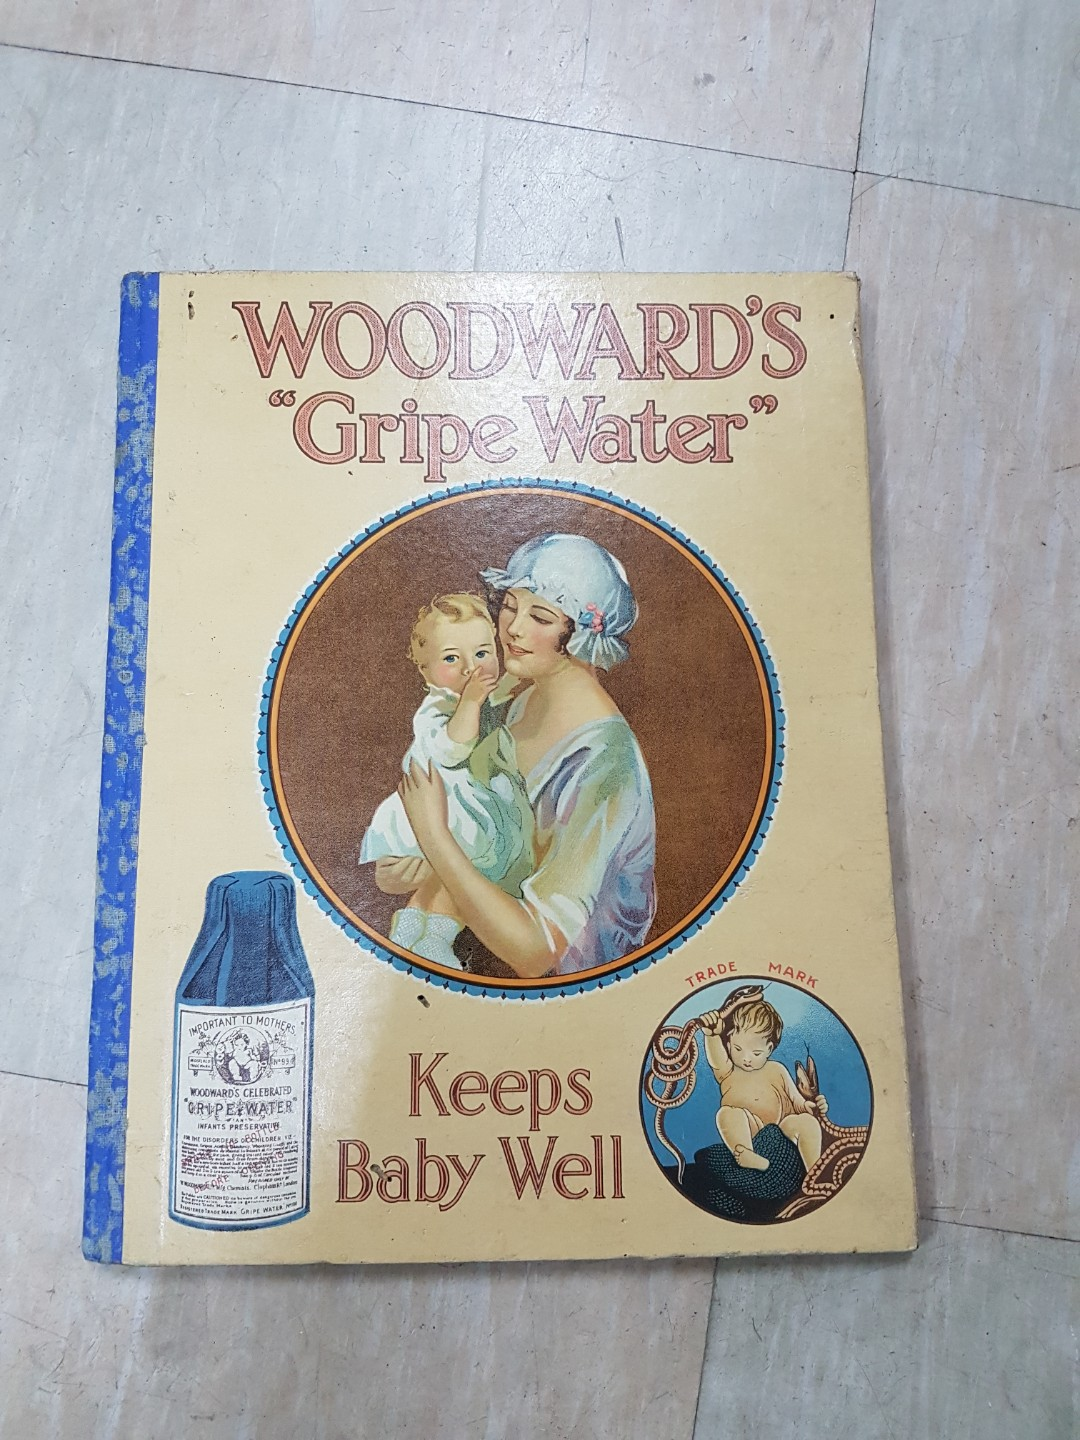 0328 1940 To 1943 Hardcover Woodwards Gripe Water Calendar Vintage Collectibles On Carousell